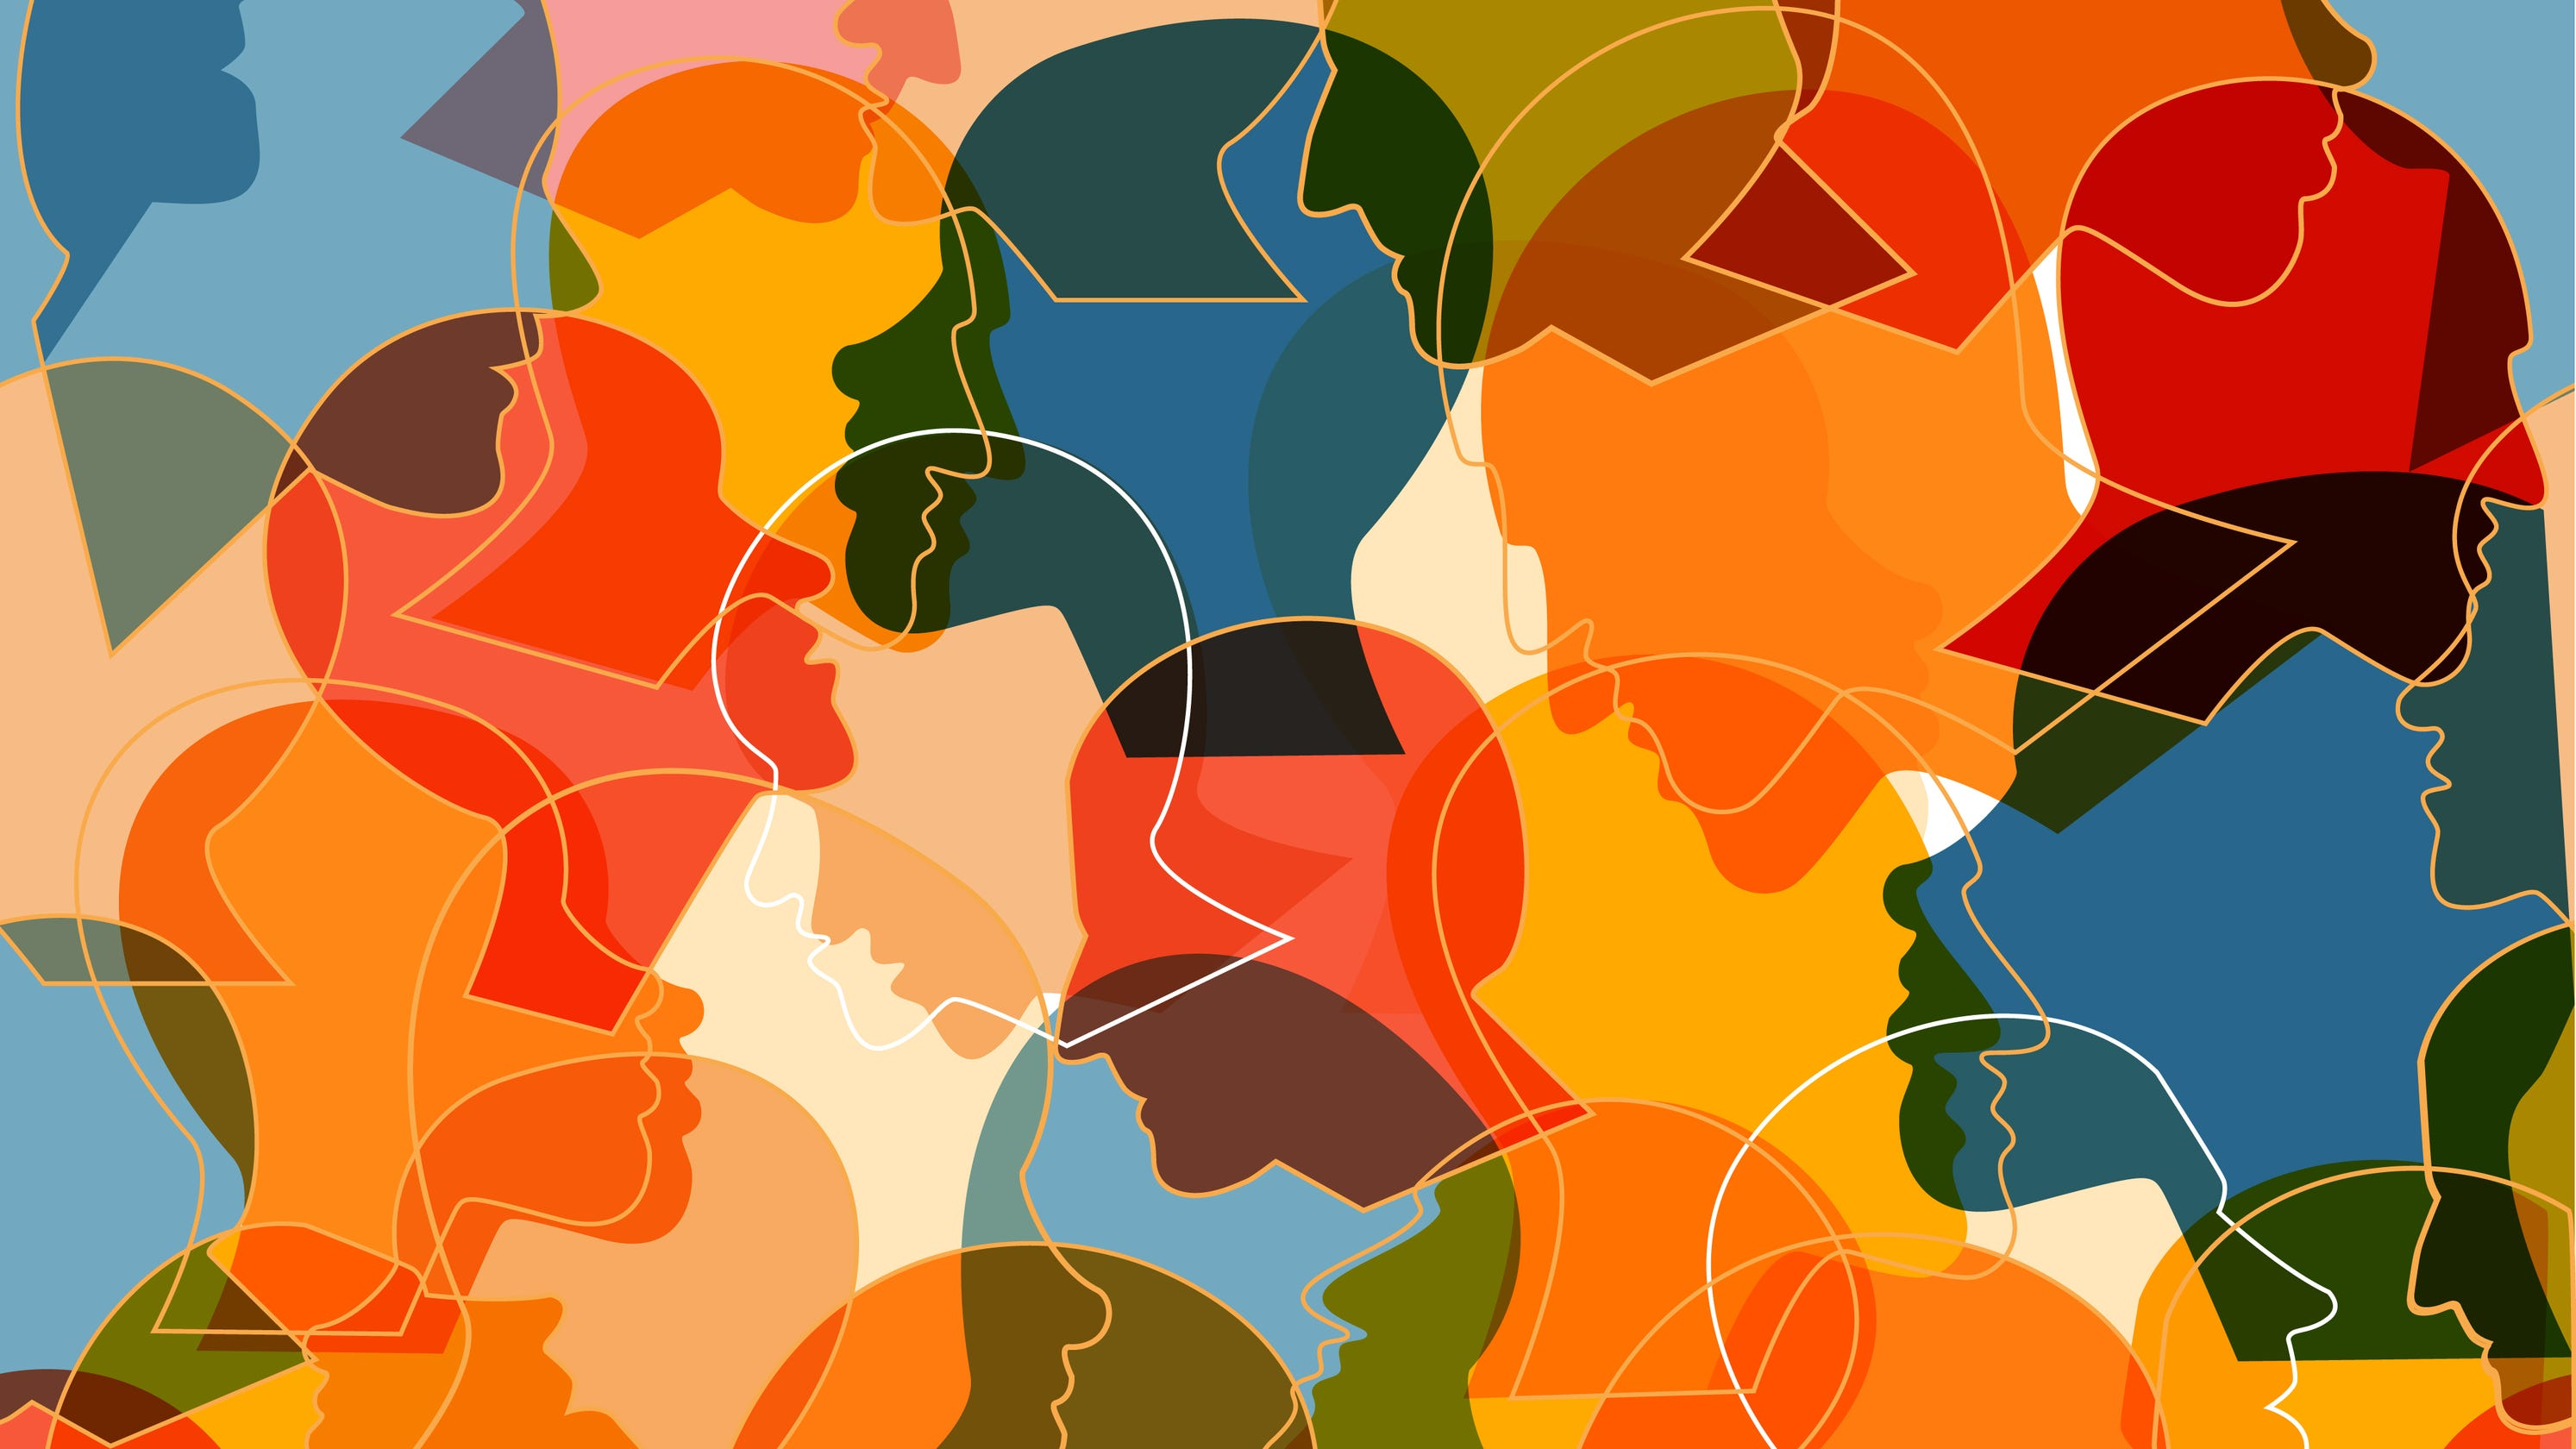 Time for NY state, medical community to improve mental-health responses - Democrat & Chronicle